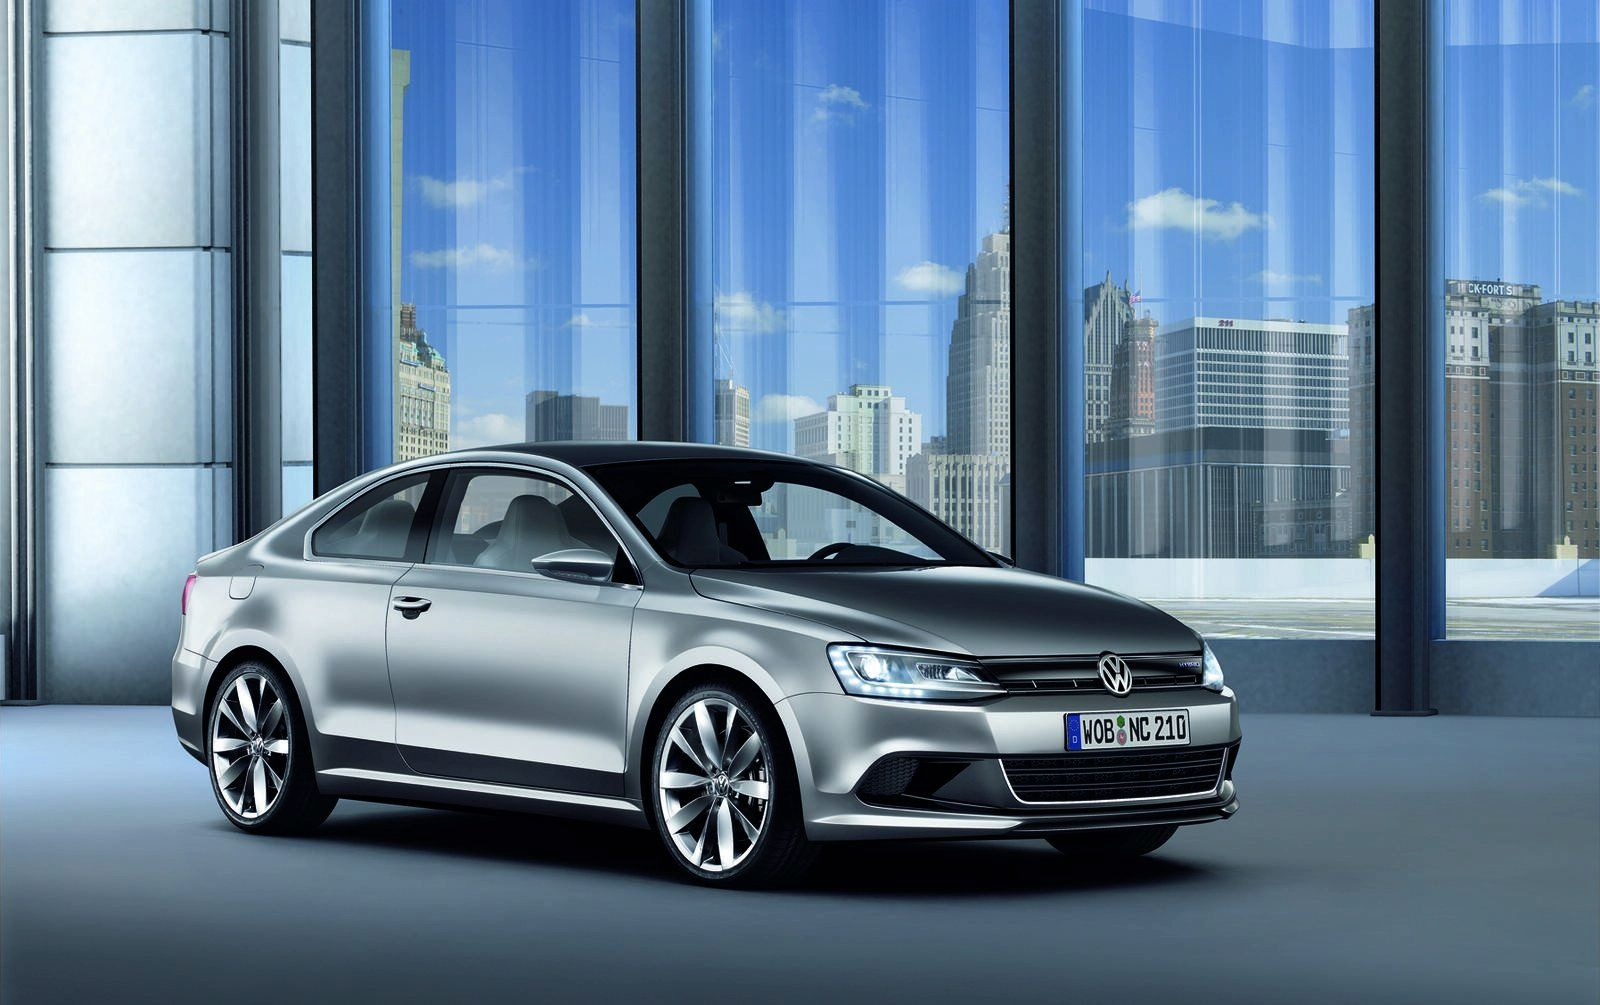 VW Golf Coupe photo 11